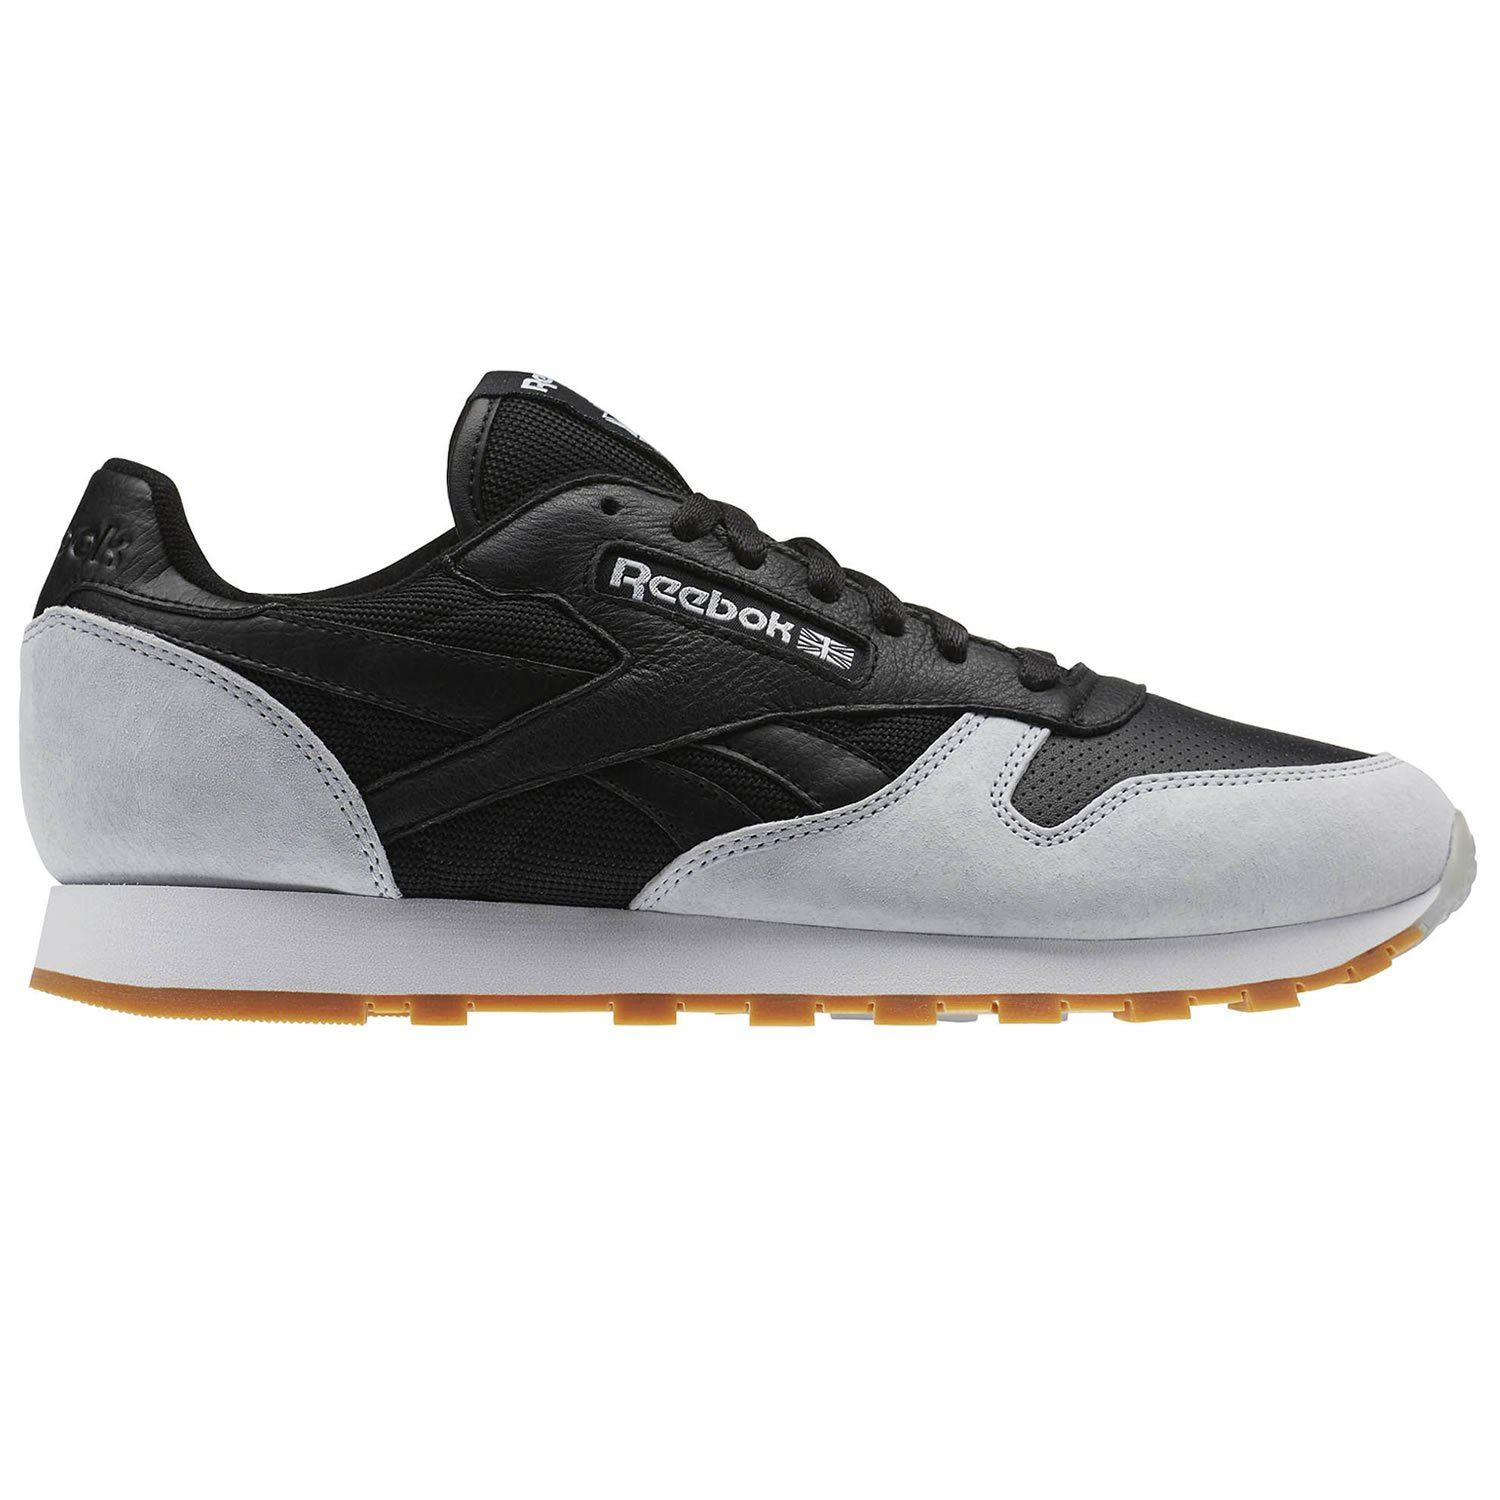 new product 2a654 b1381 Details about REEBOK CLASSIC KENDRICK LAMAR PERFECT SPLIT TRAINERS LEATHER  BLACK GREY MEN S